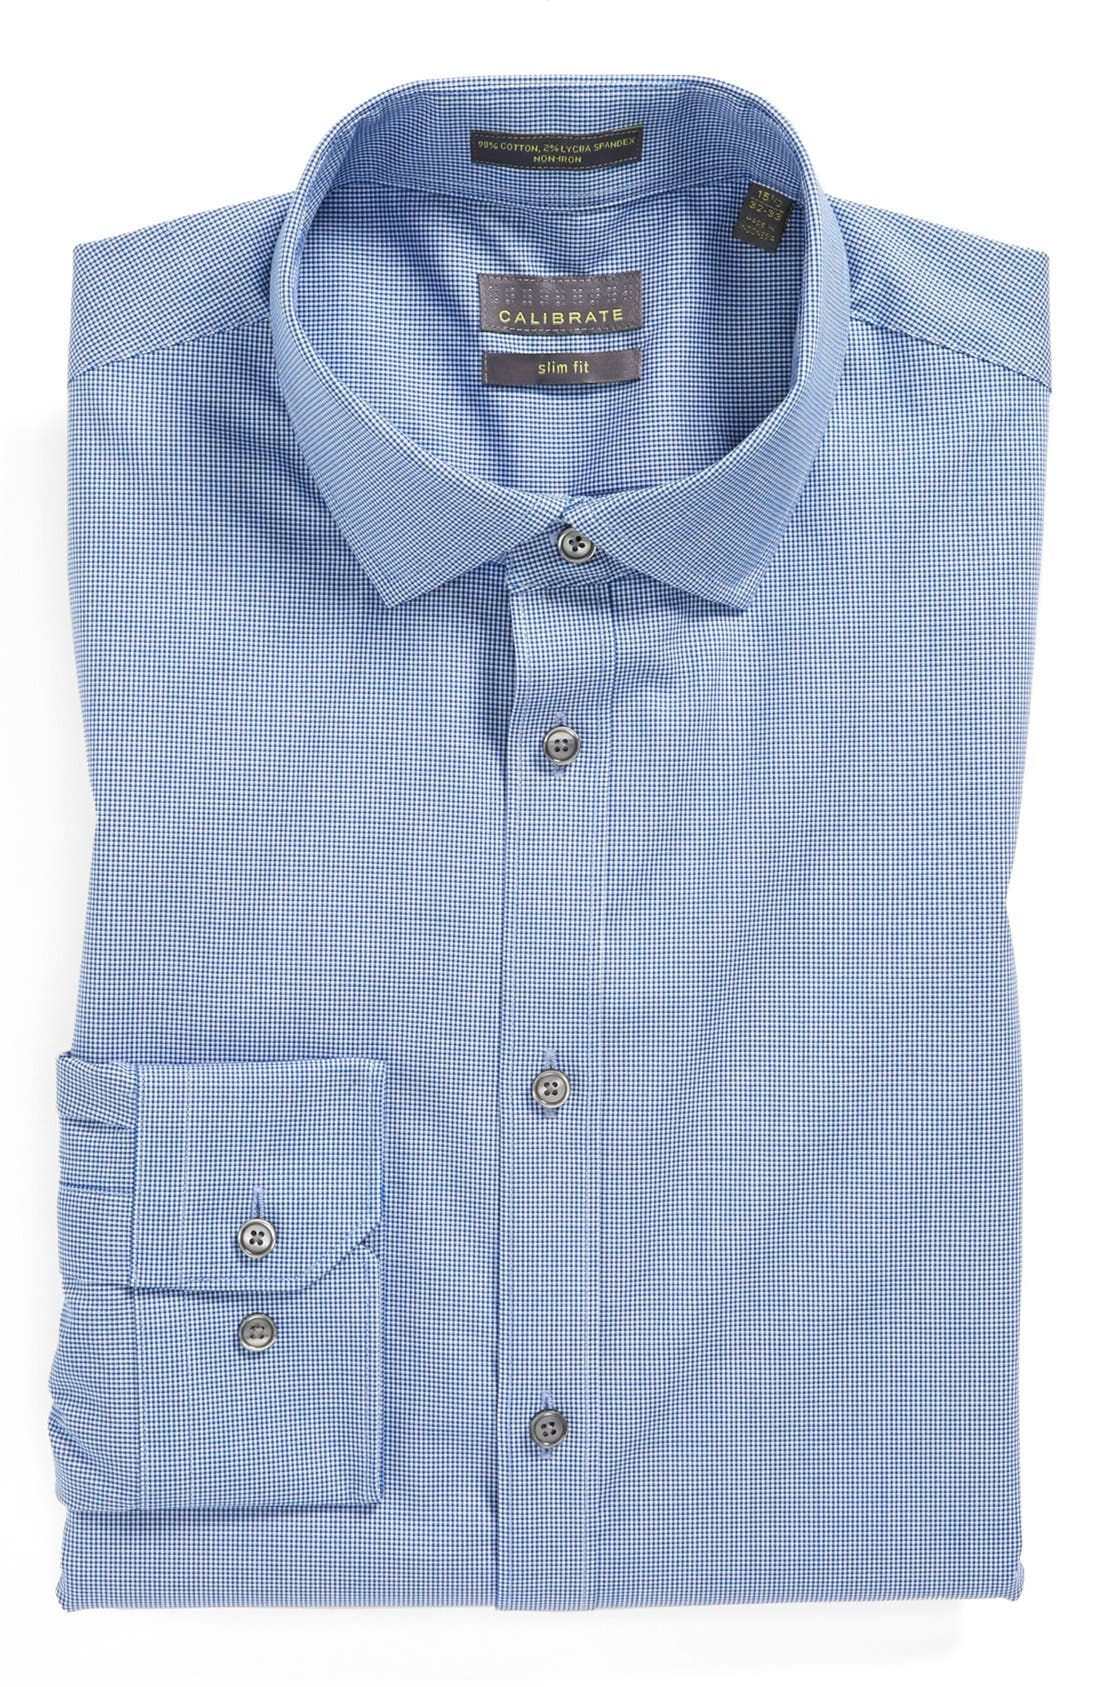 Alternate Image 1 Selected - Calibrate Extra Trim Fit Non-Iron Microcheck Dress Shirt